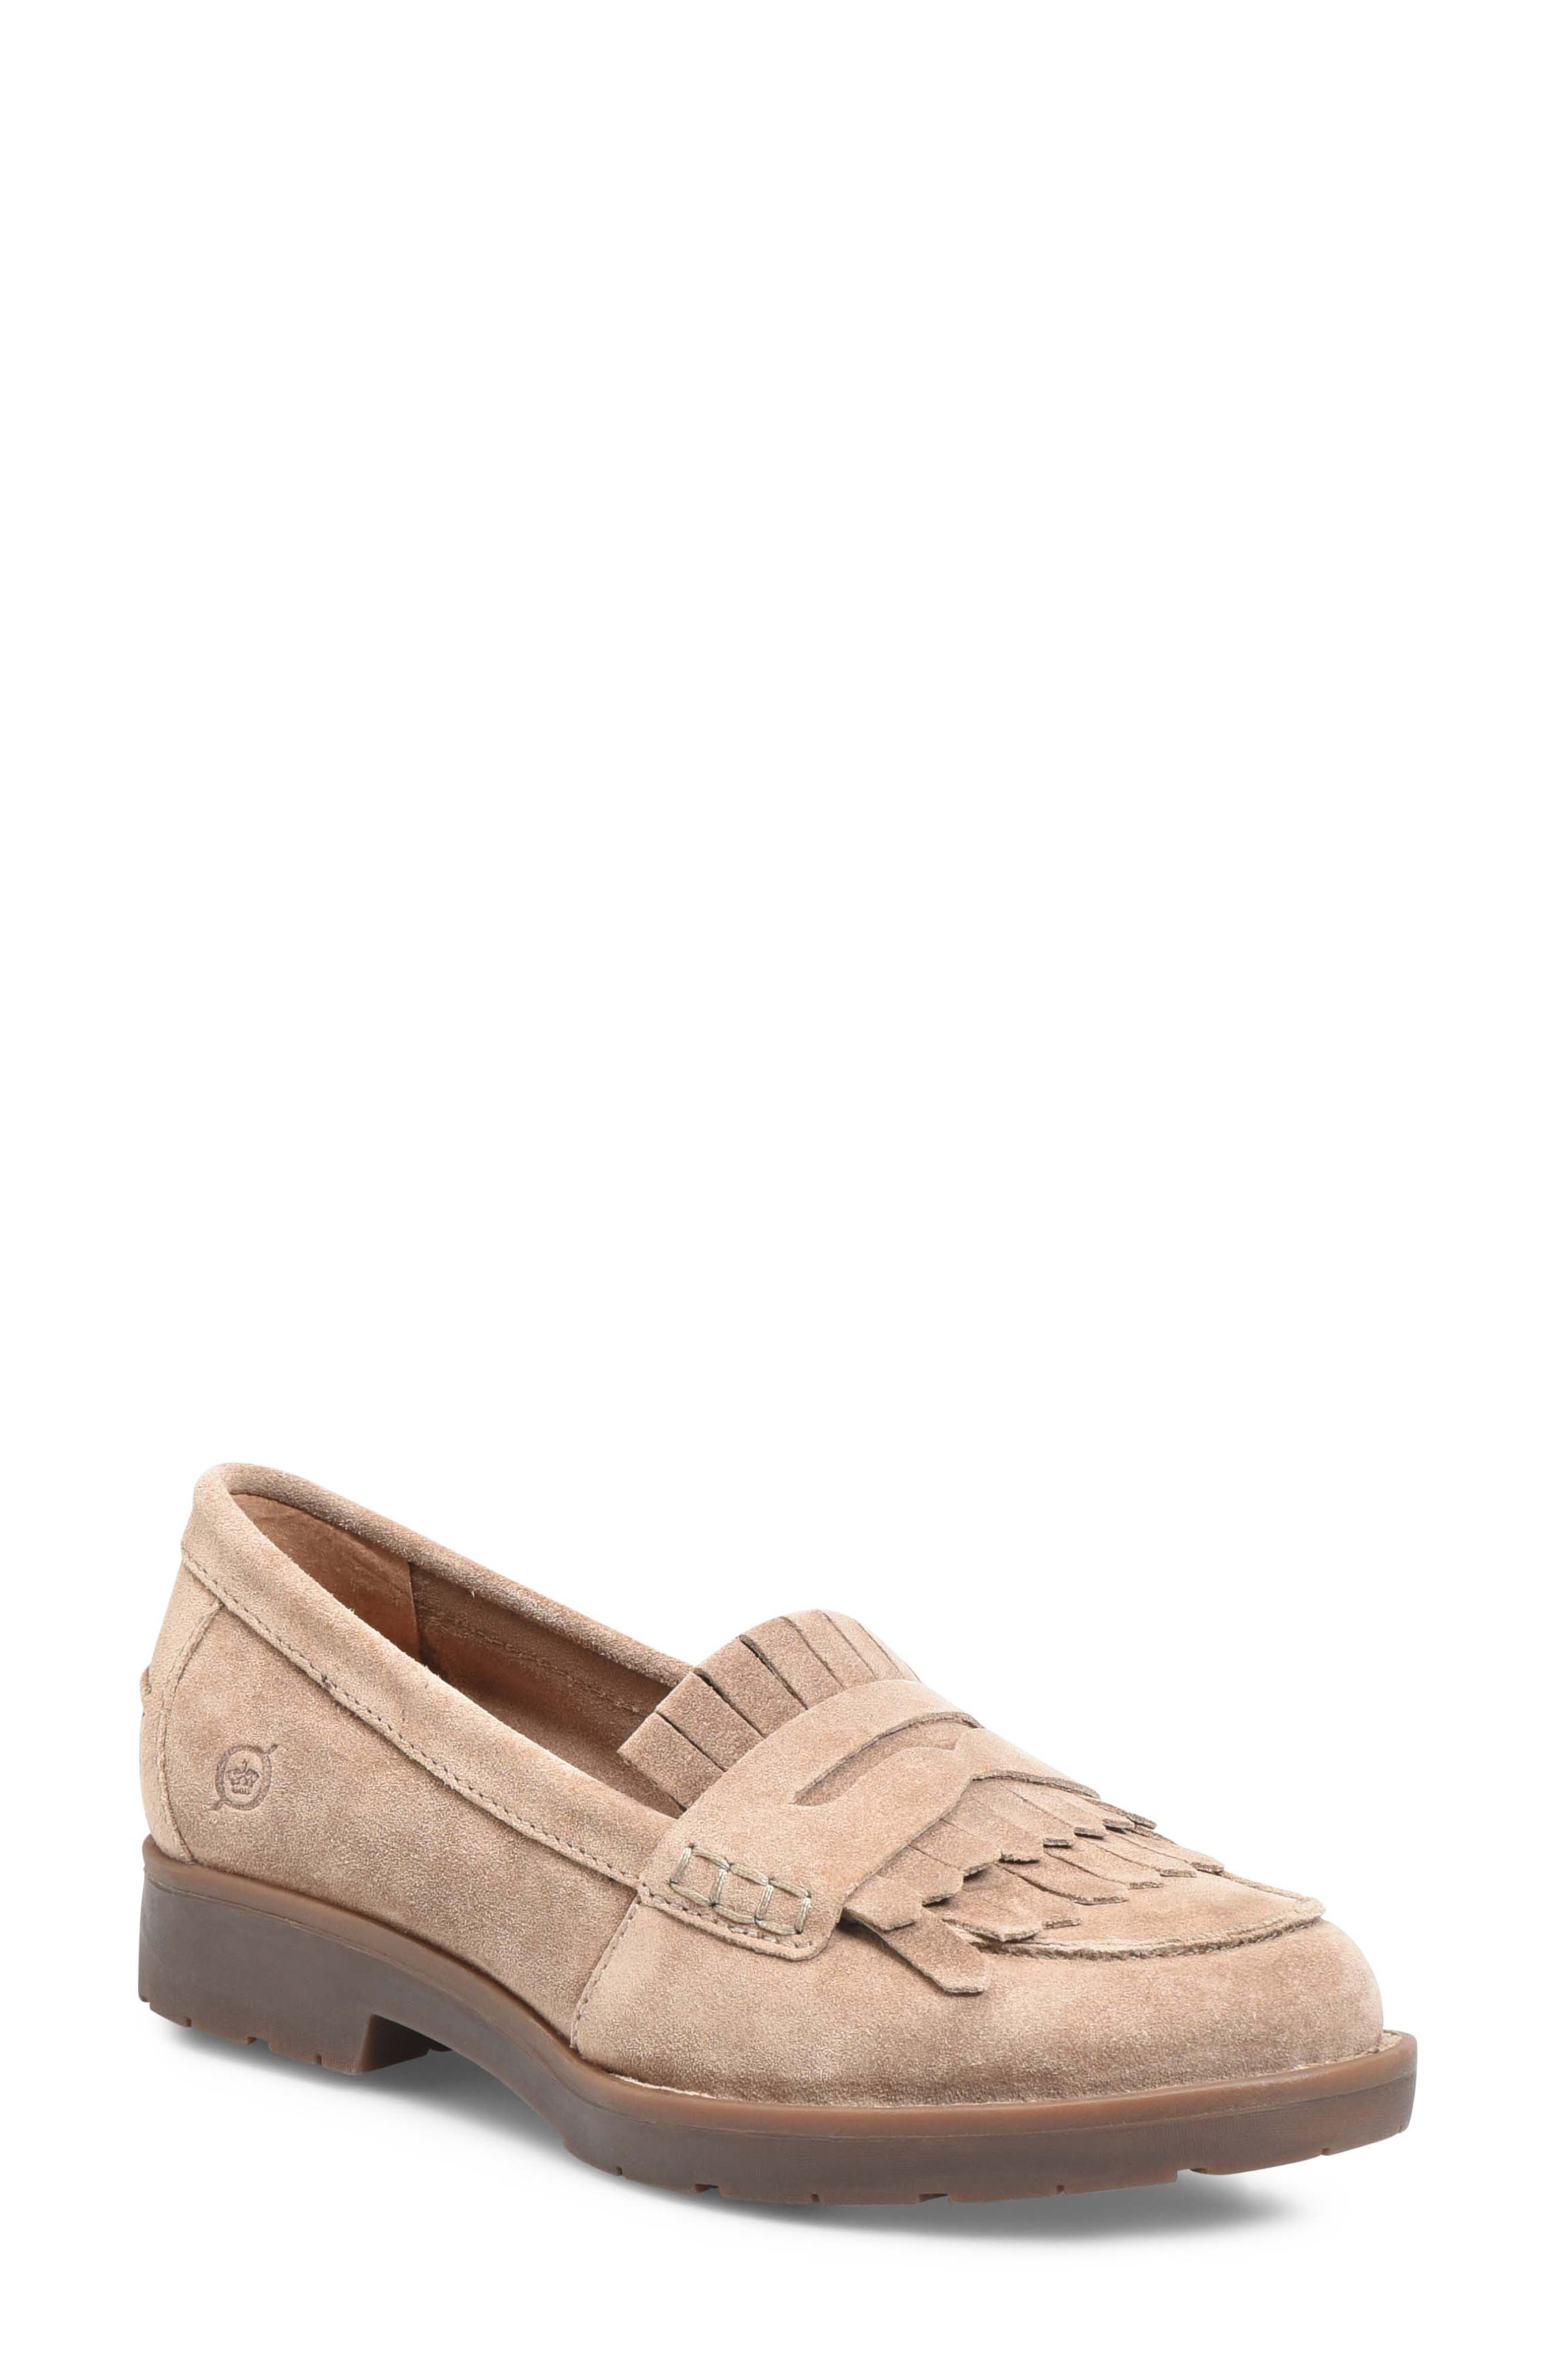 Lorens Loafer, Main, color, TAUPE SUEDE